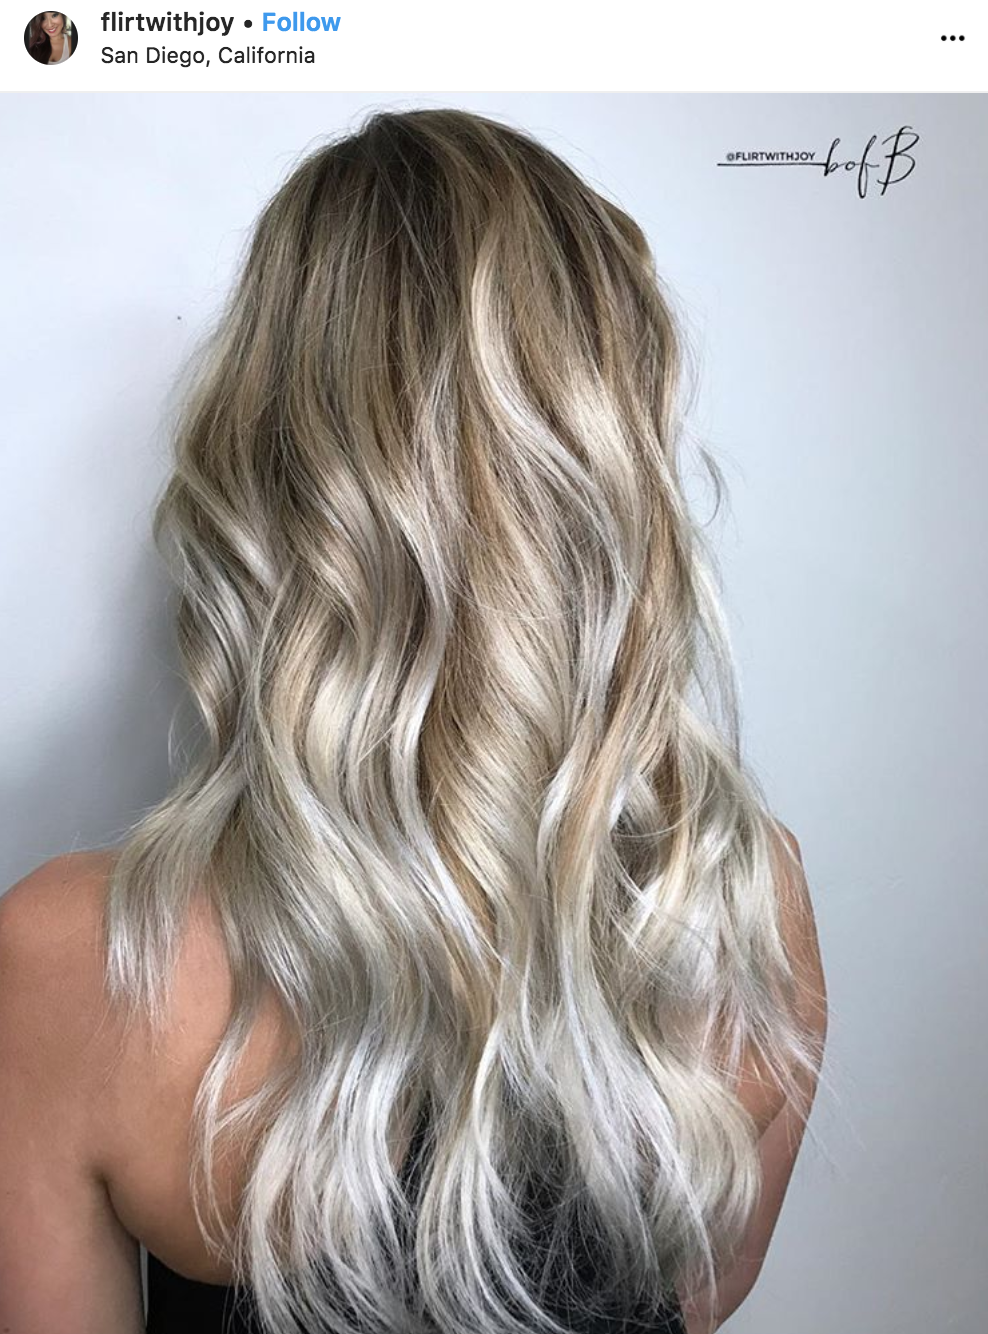 Blonde Trend Winter 2018 5 Must Try Hair Color Trends For Spring 2018 Flirt Urban